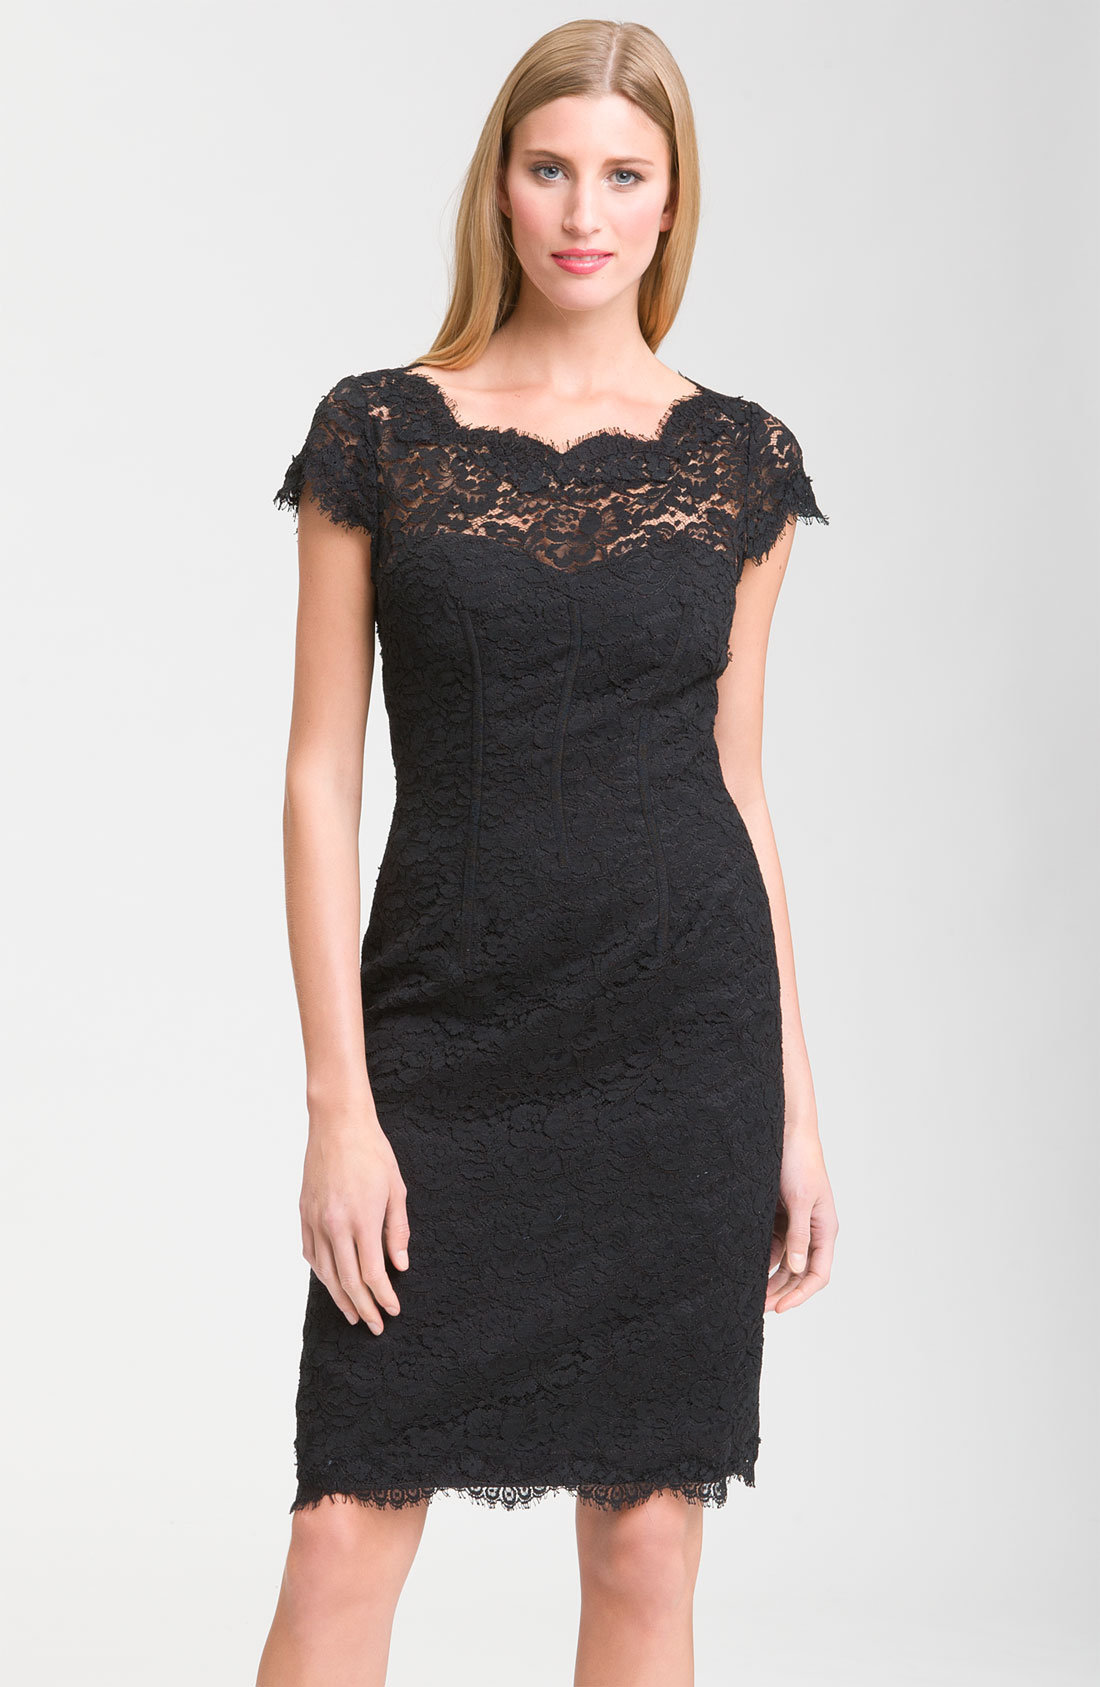 dresses for female wedding guests formal wedding guest dresses Dresses For Female Wedding Guests